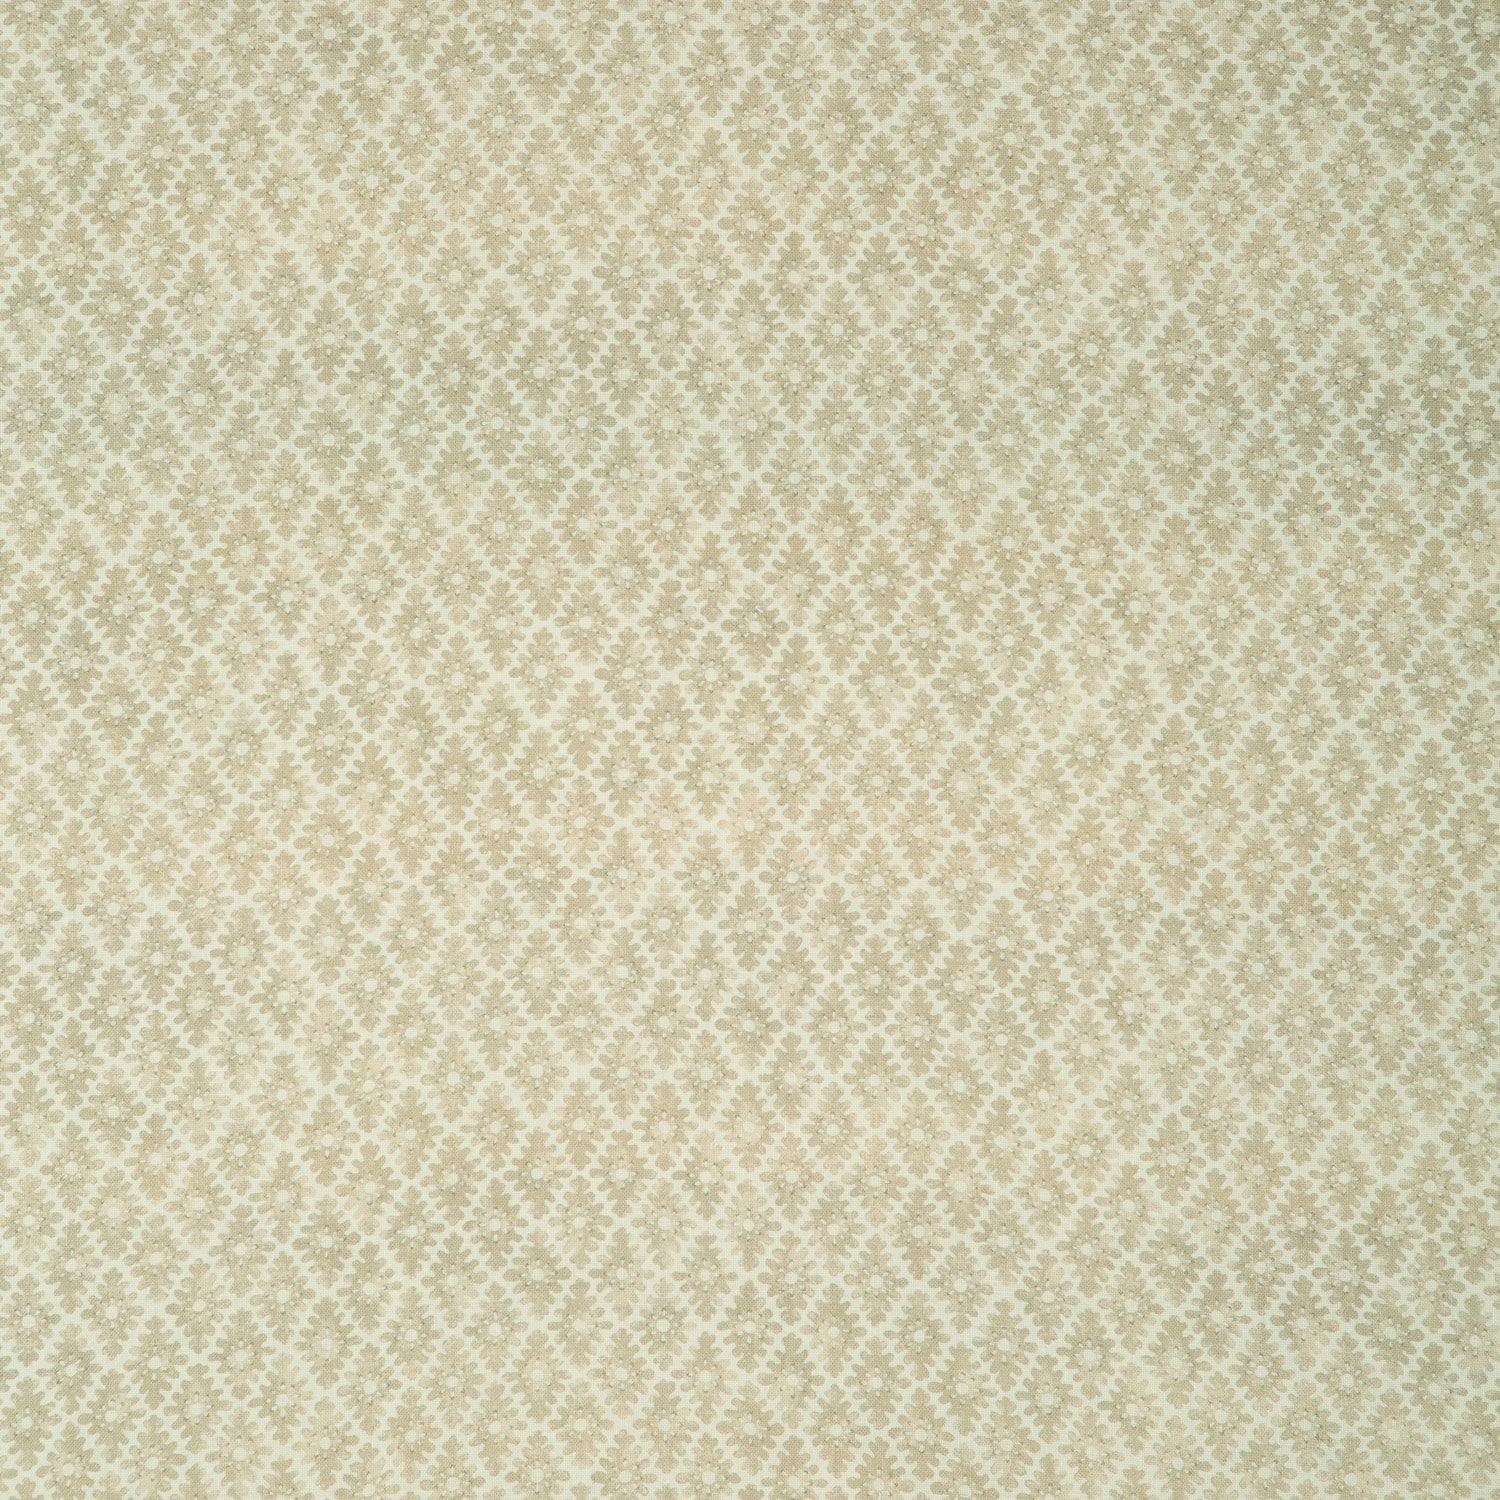 Fabric sample of a neutral printed linen fabric for curtains and upholstery